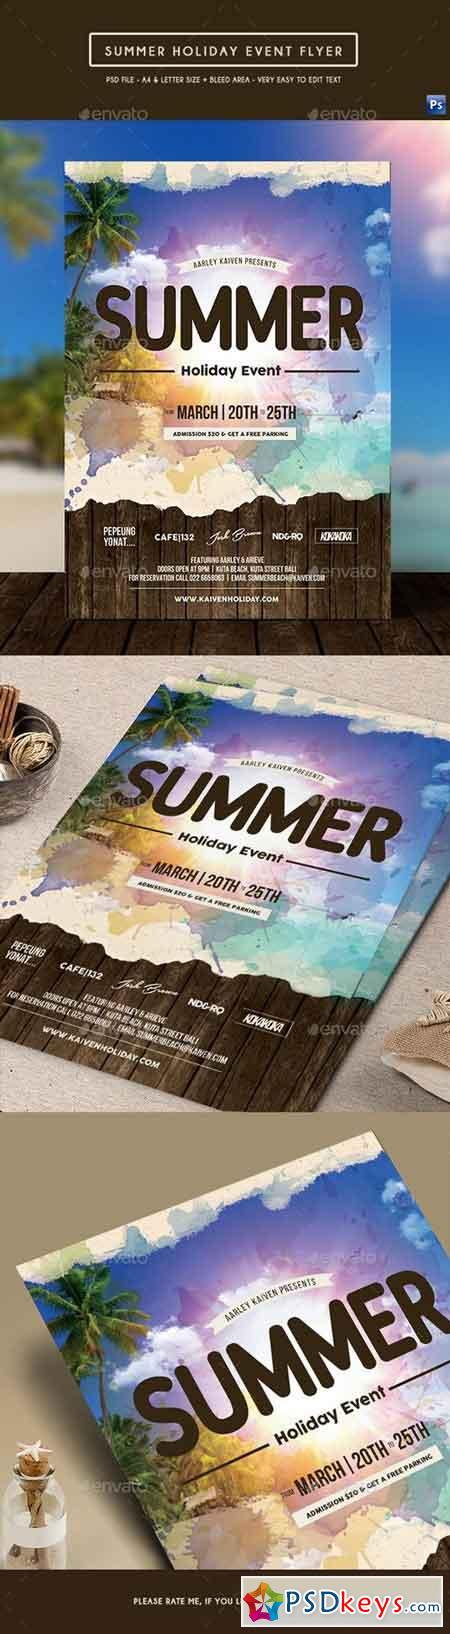 Summer Holiday Event Flyer 17373420